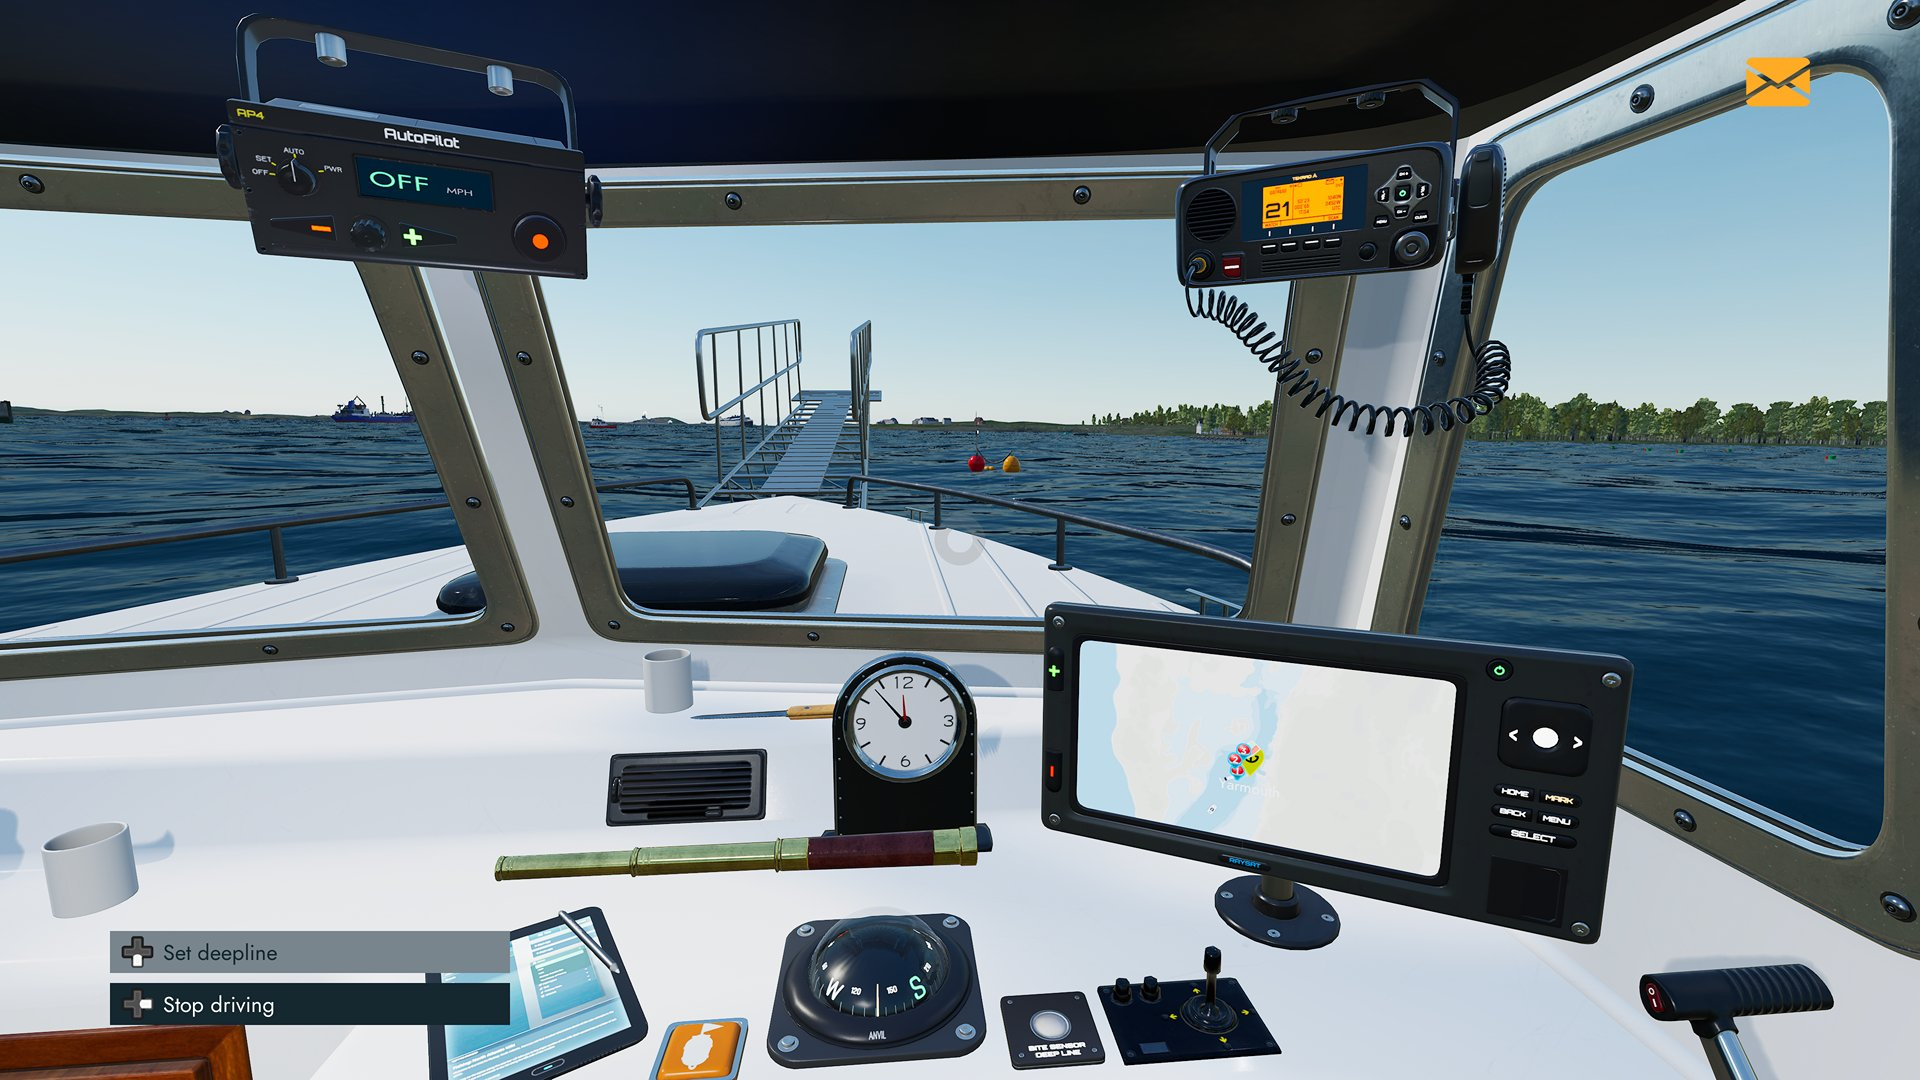 An interior screenshot from Fishing: North Atlantic, showing your vessel's dashboard and instruments panel.